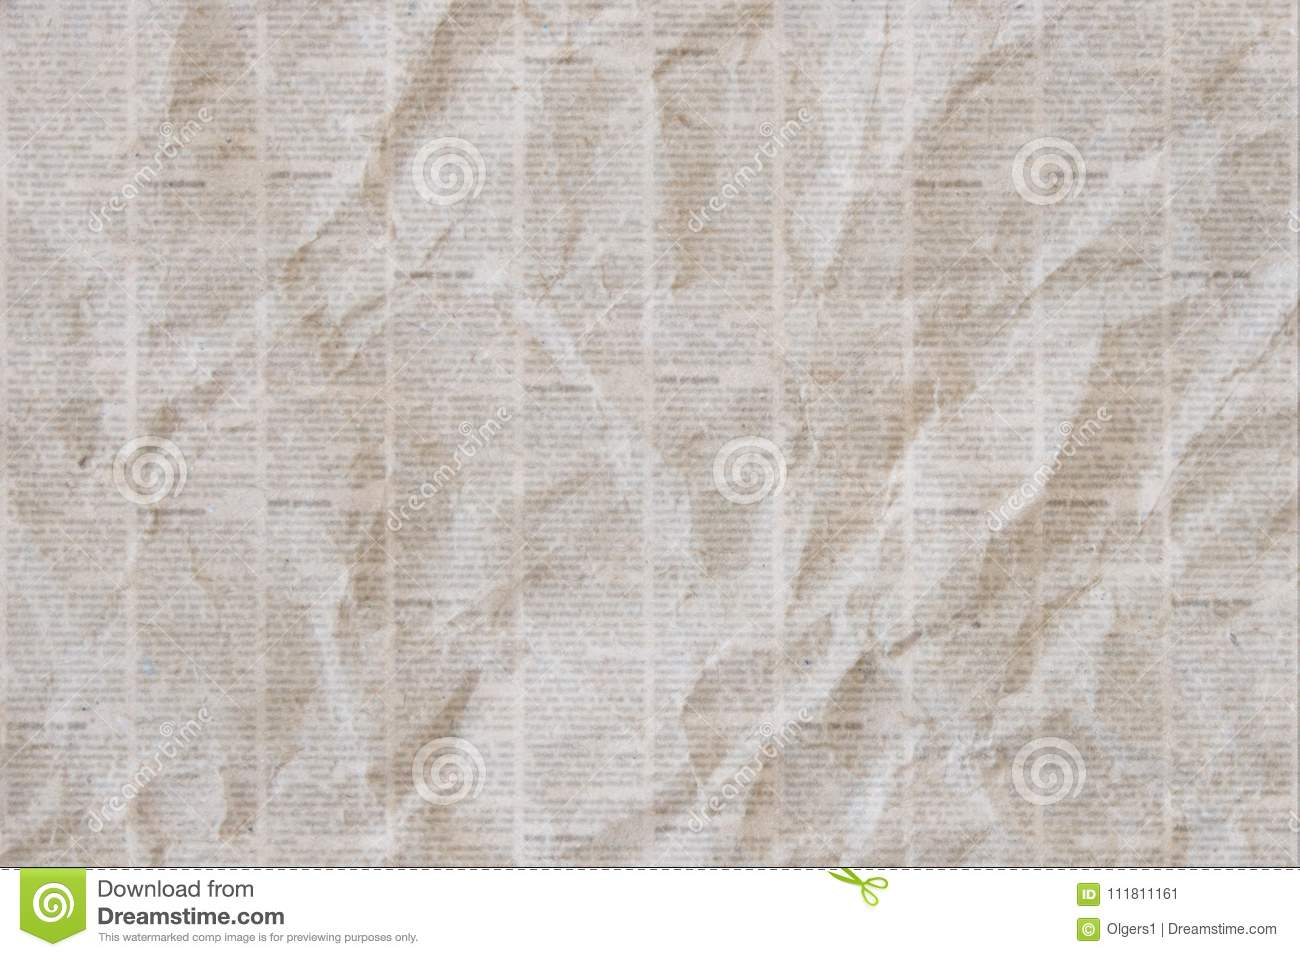 old crumpled newspaper texture background stock illustration